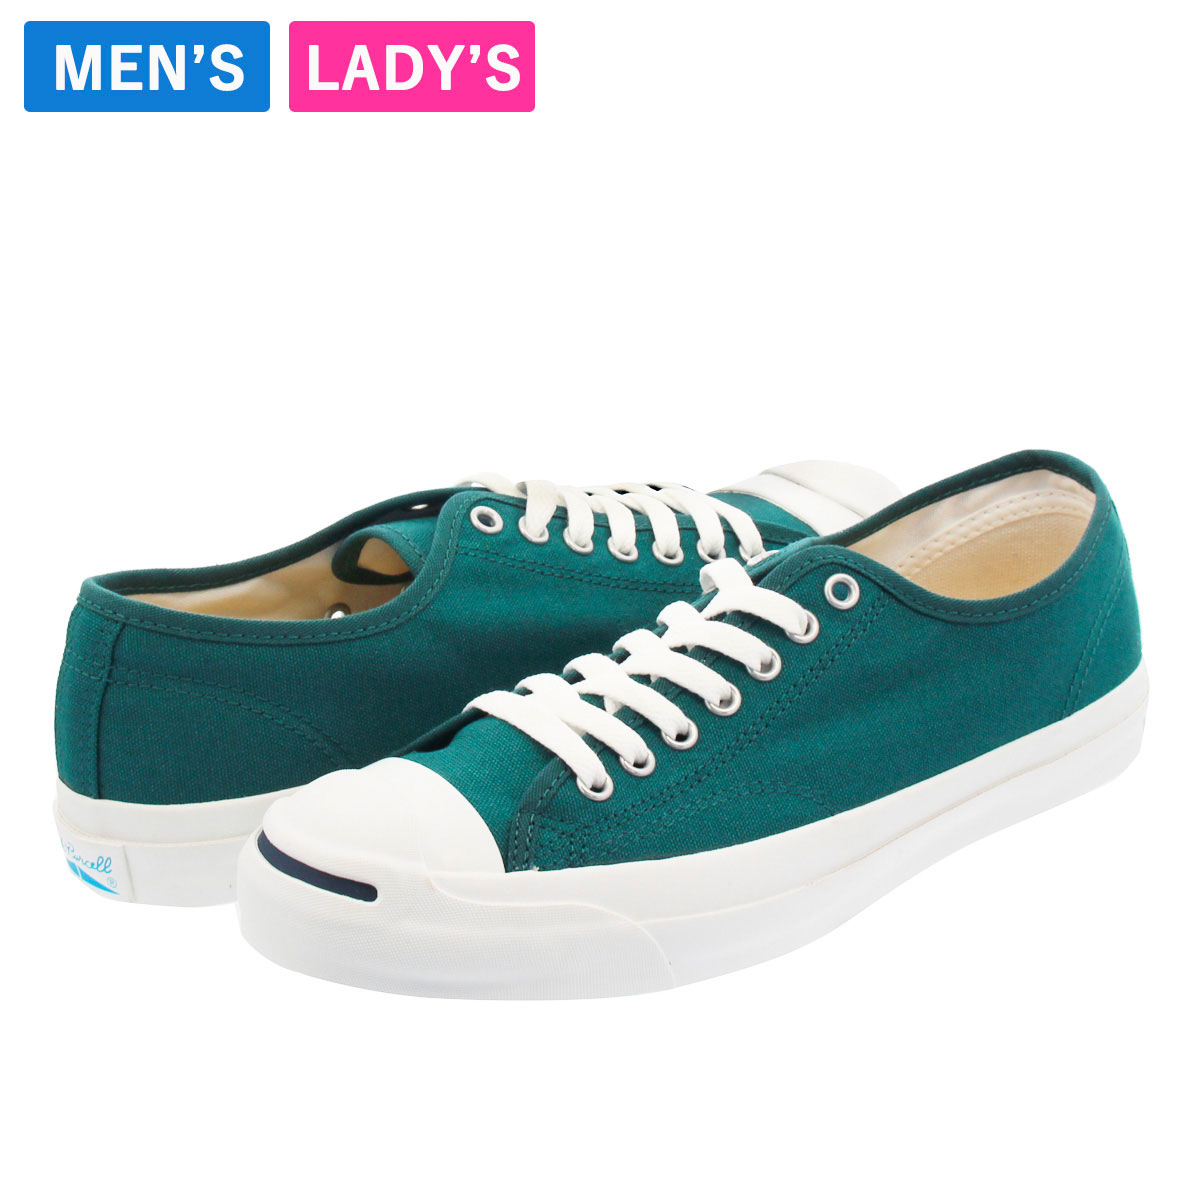 aa3b95e40950a CONVERSE JACK PURCELL COLORS RH Converse Jack Pursel colors RH GREEN  32263584